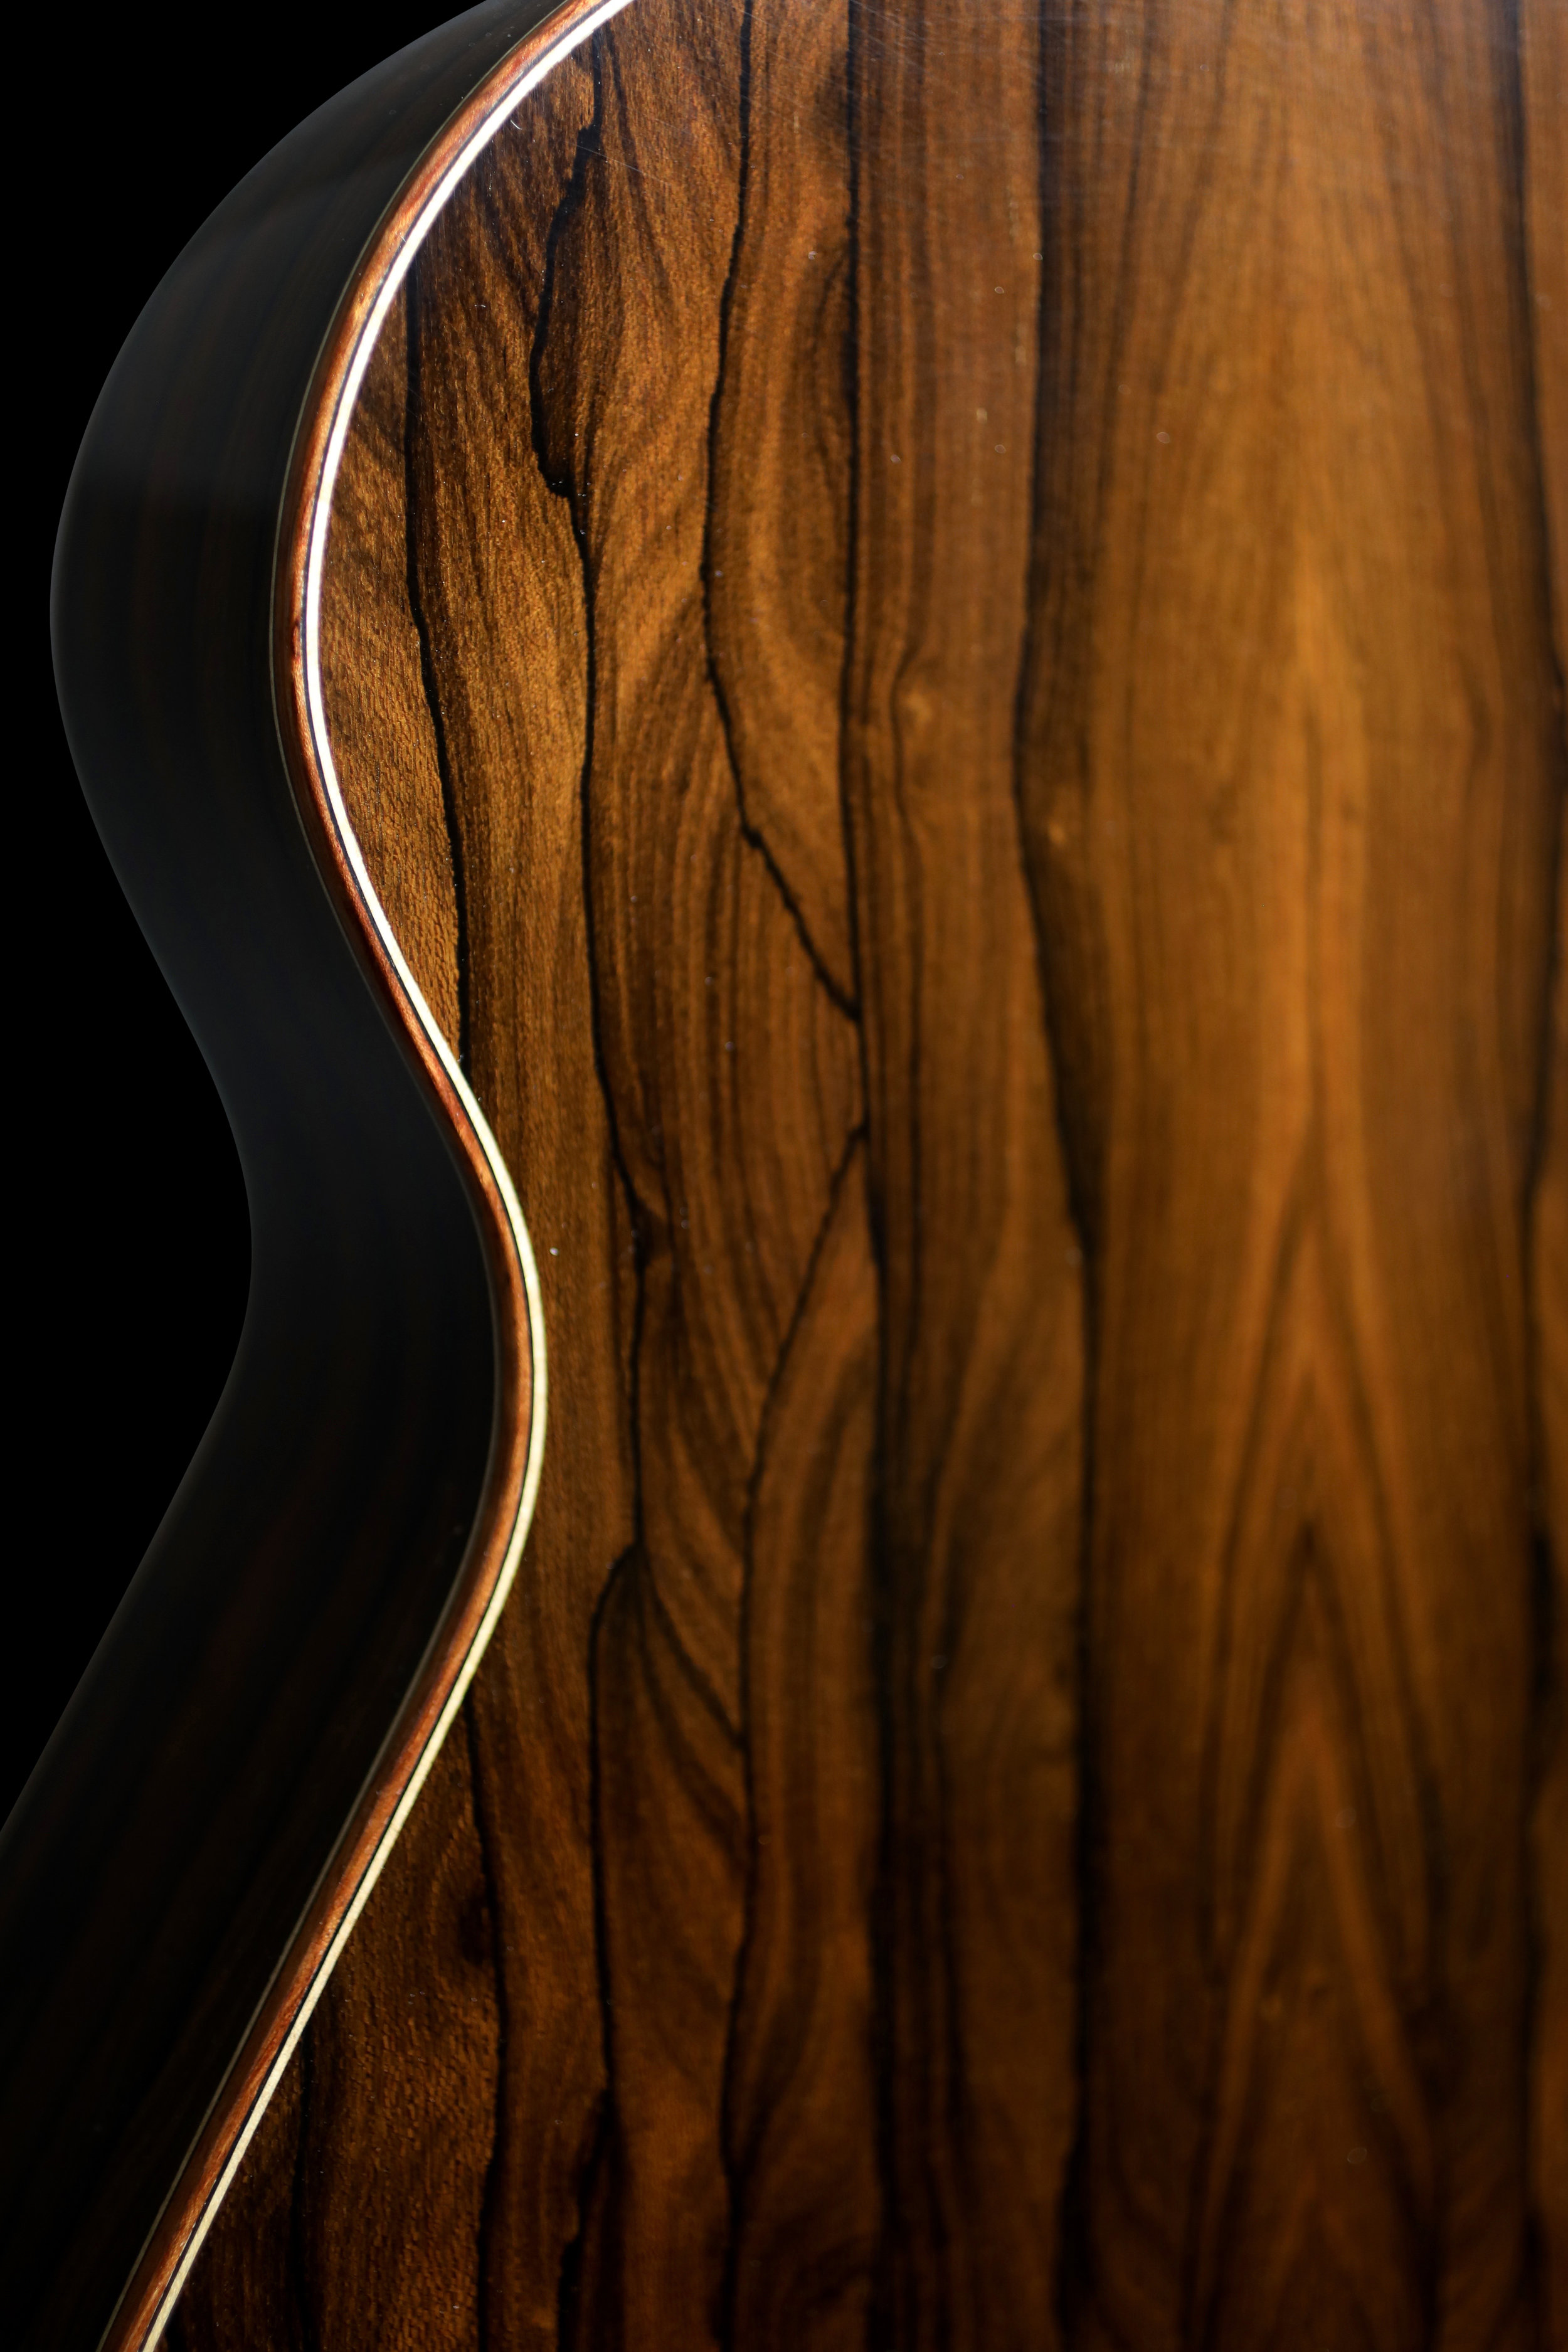 Ziricote Back and Sides with Bubinga Binding and Curly Maple Purfling